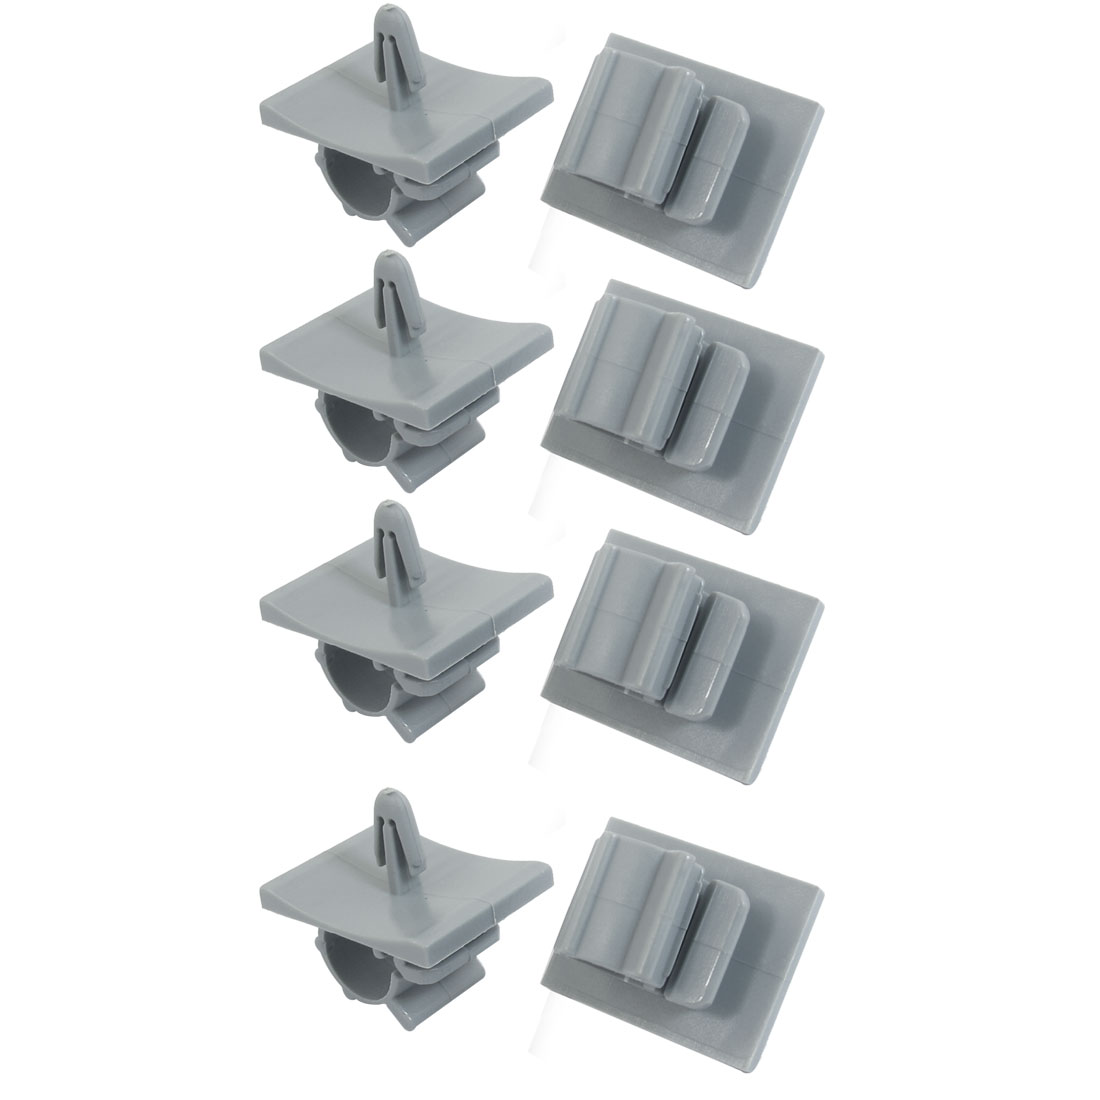 10mm Hole Dia Cord Managemen Standoff Cable Holder Clamp Clips Organizer 8 Pcs